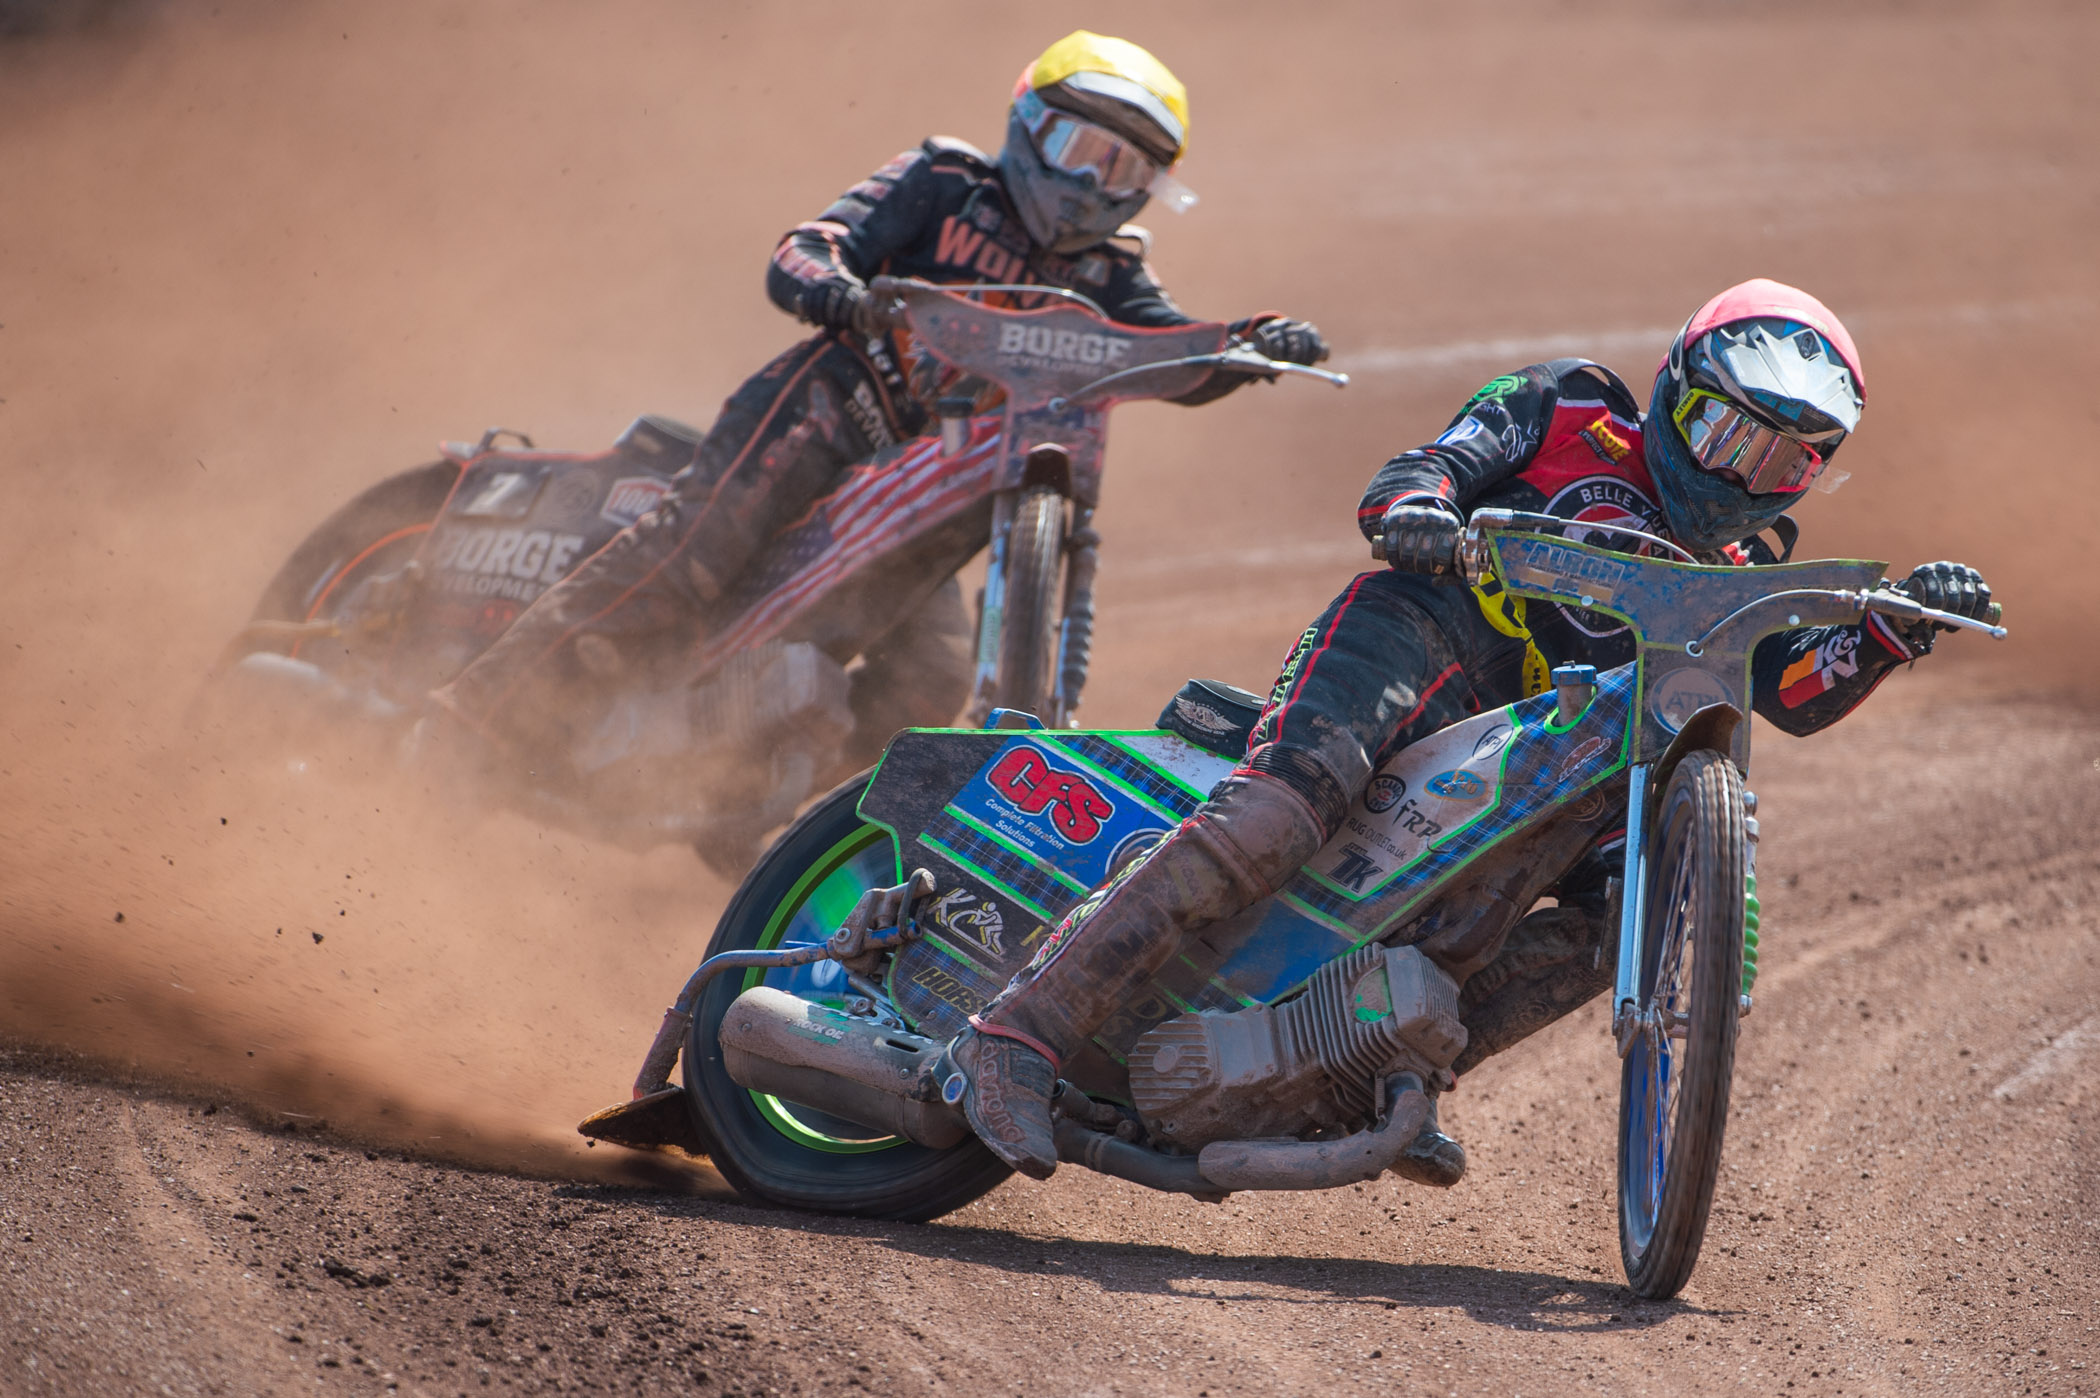 Dan Bewley top-scored for the Rentruck Aces at home with an impressive 12 points